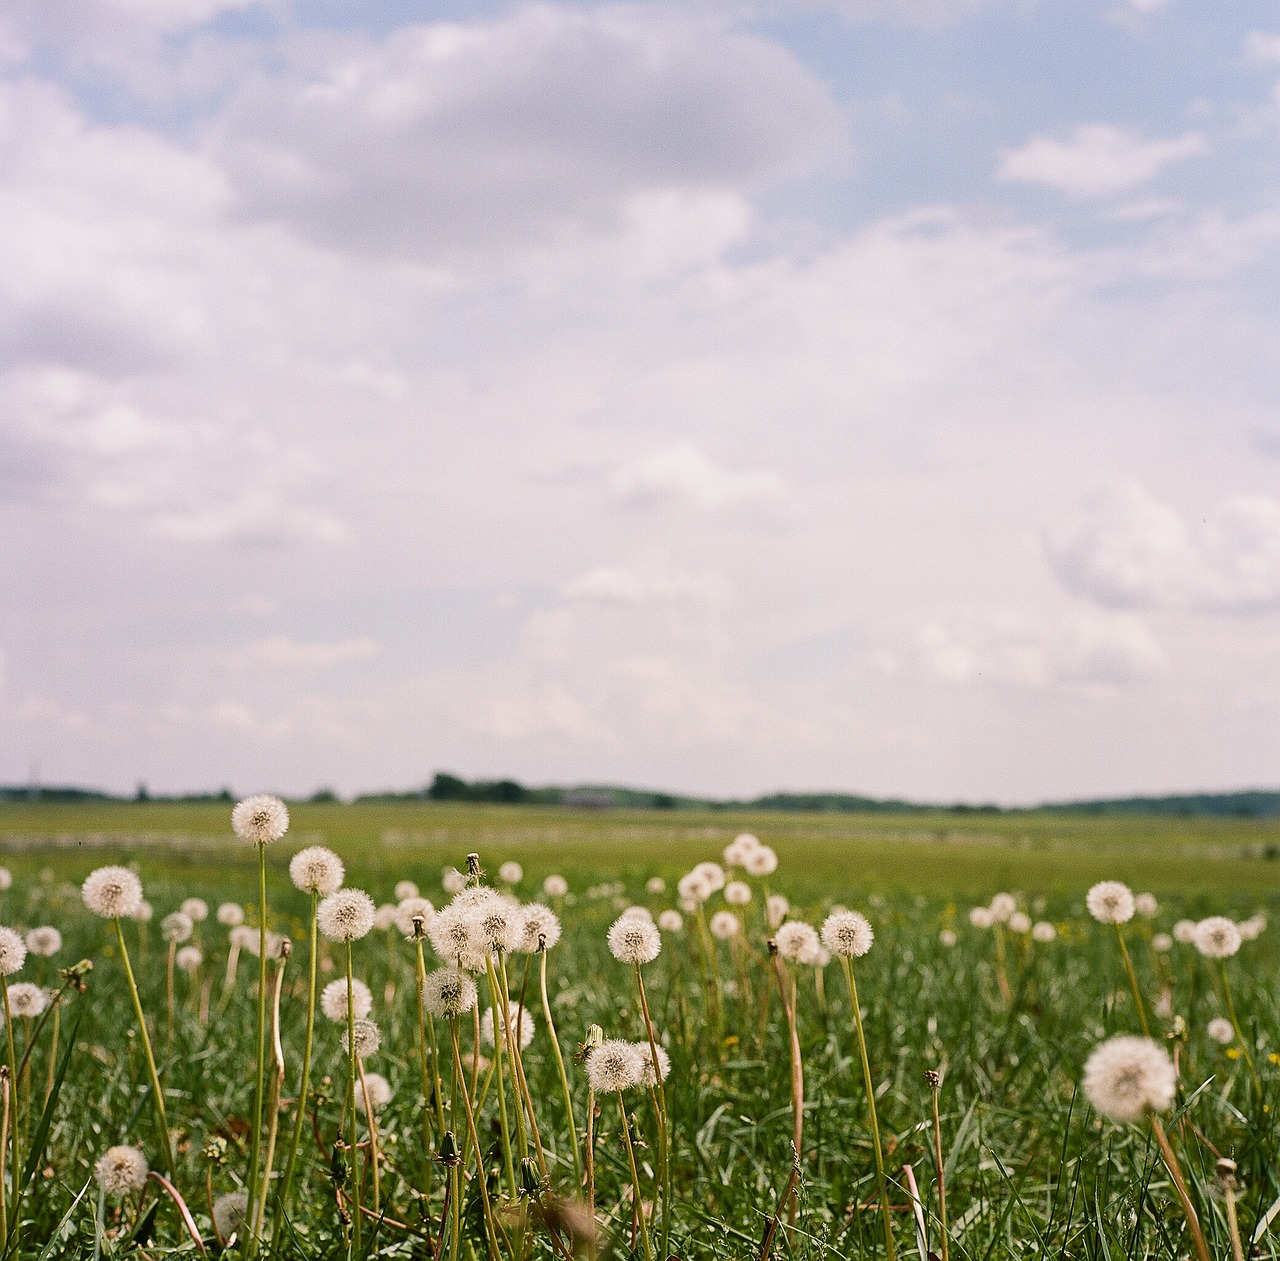 dandelion,fields,gettysburg,pa,pennsylvania,flower,grass,meadow,nature,country,blossom,countryside,landscape,rural,plant,flora,free pictures, free photos, free images, royalty free, free illustrations, public domain